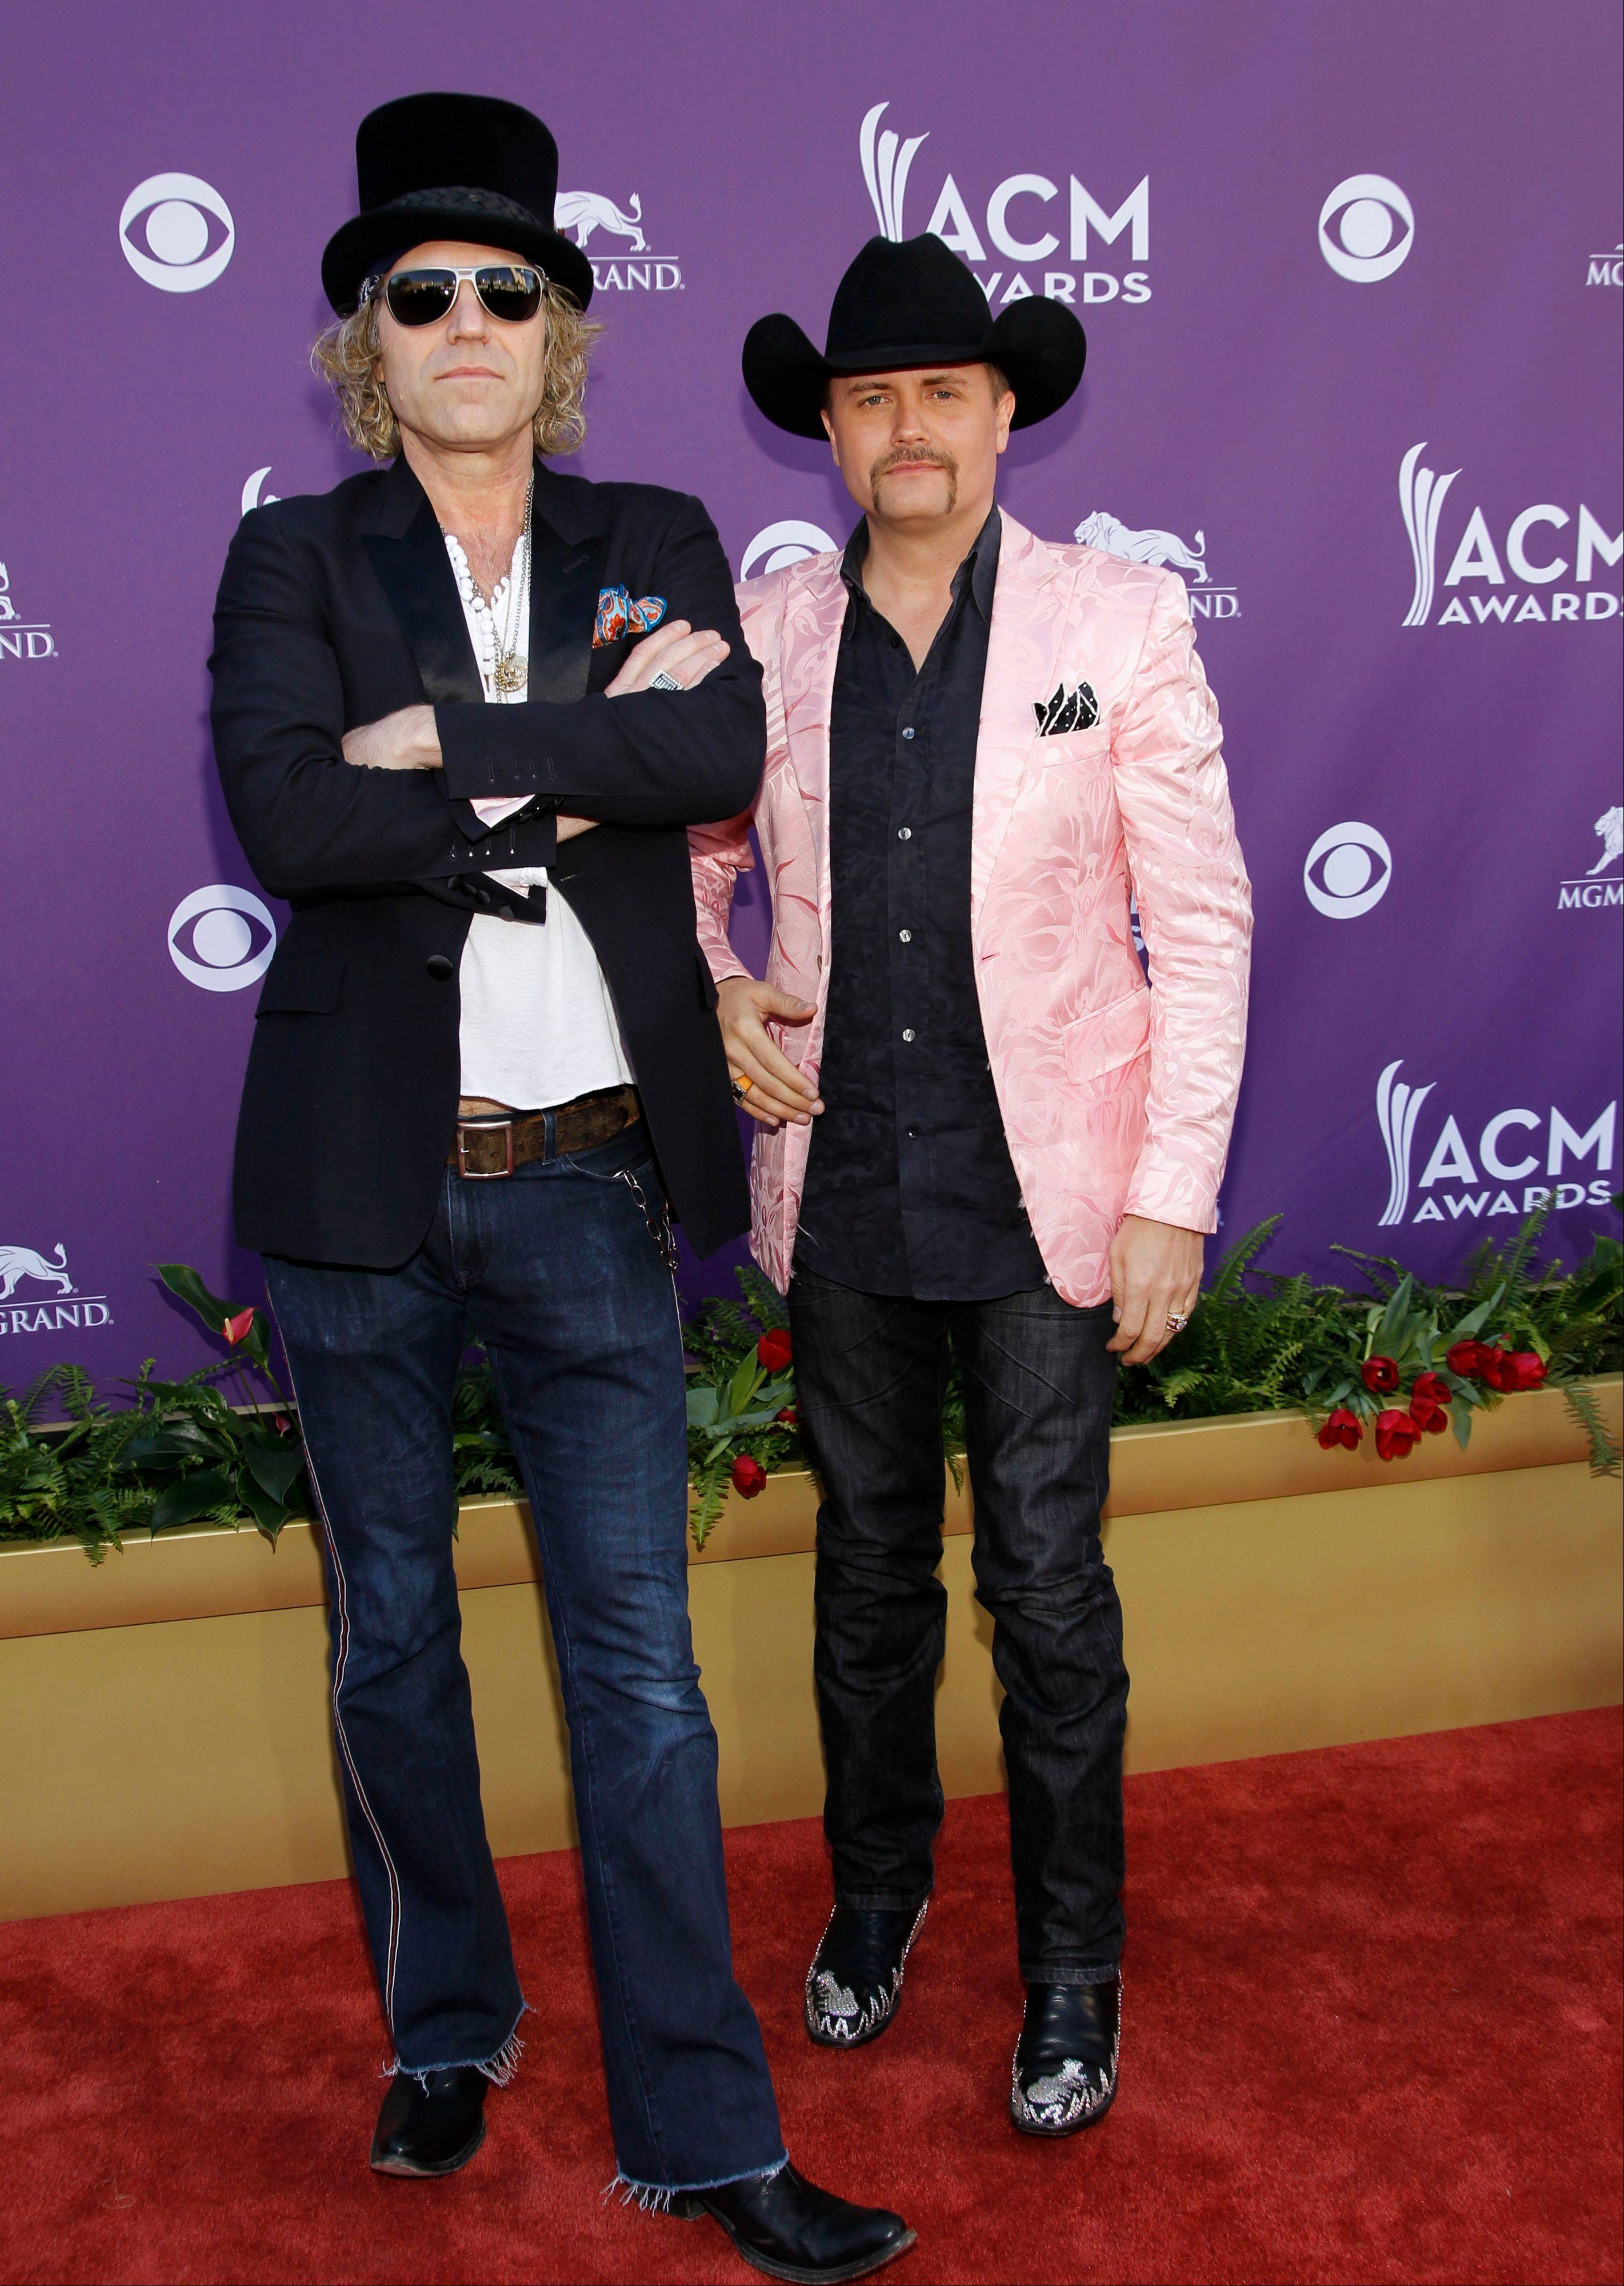 Big Kenny, left, John Rich, of musical group Big and Rich, had a little fun goofing around on the red carpet.